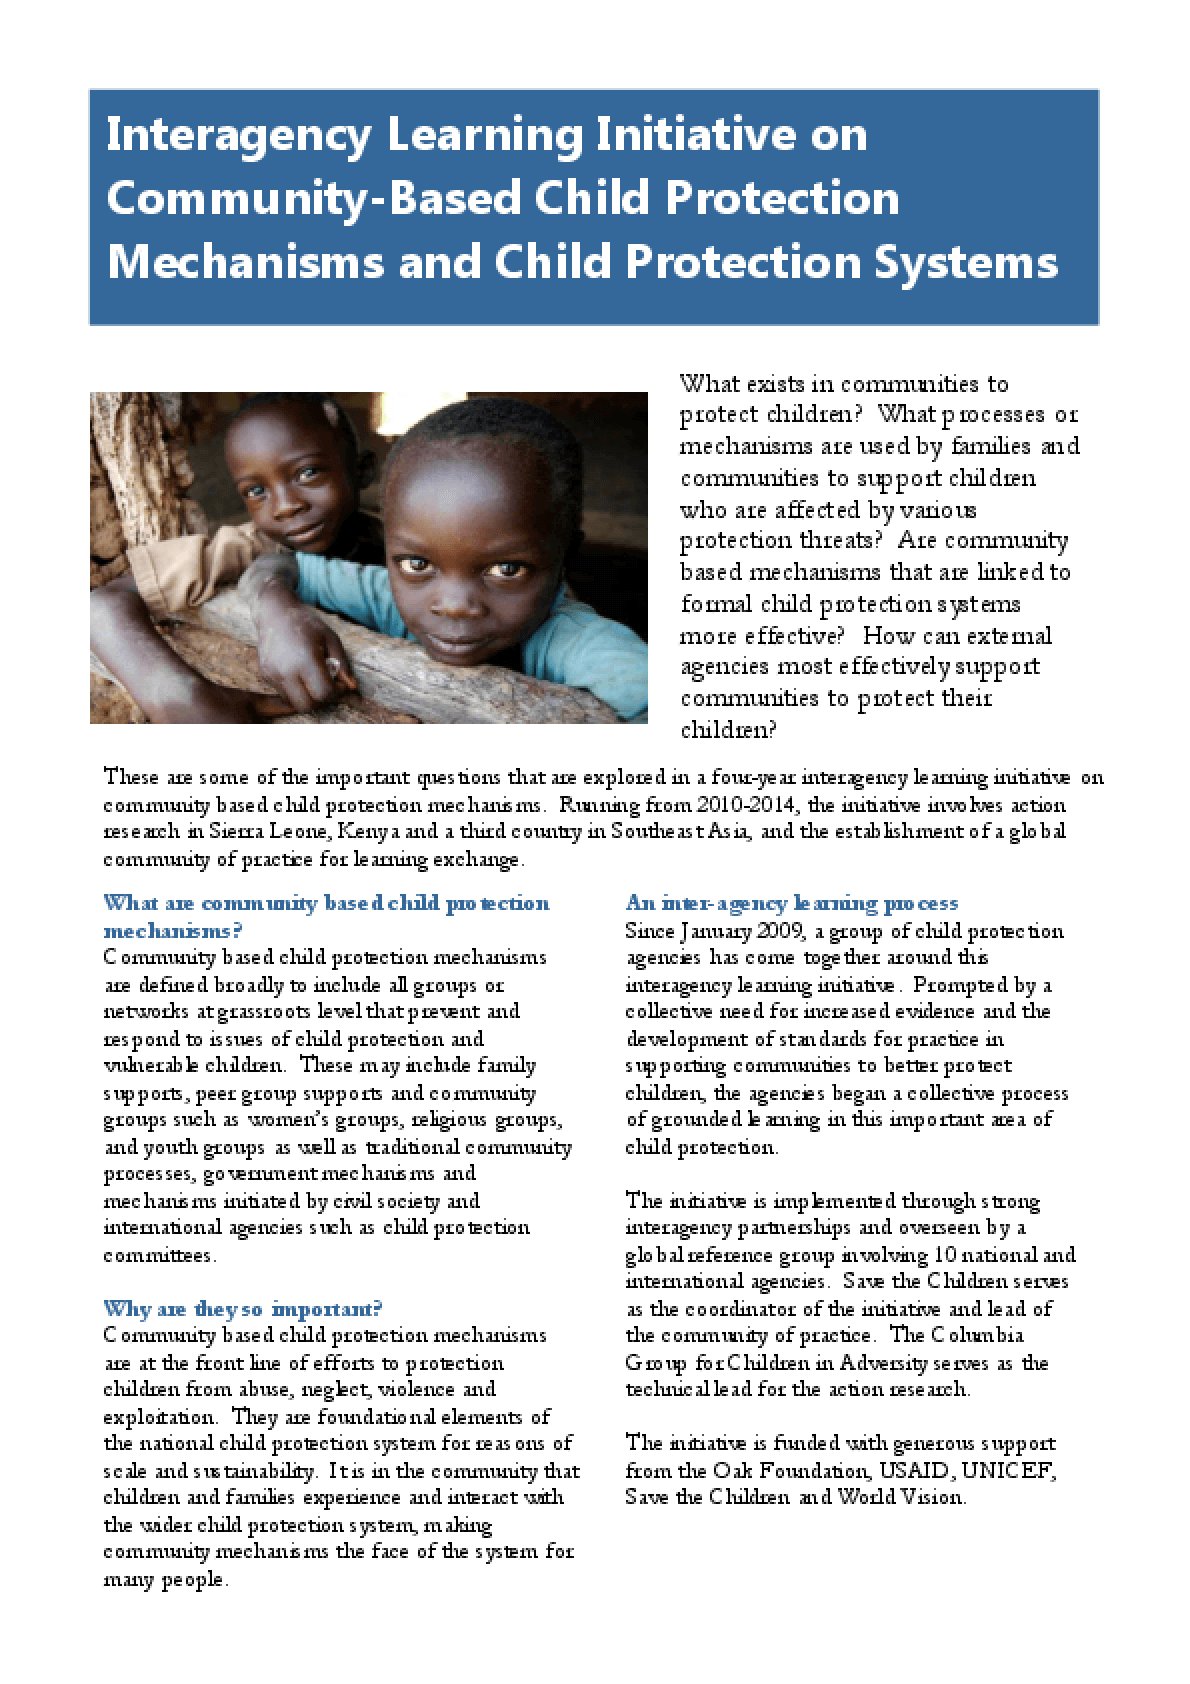 Interagency Learning Initiative on Community-Based Child Protection Mechanisms and Child Protection Systems